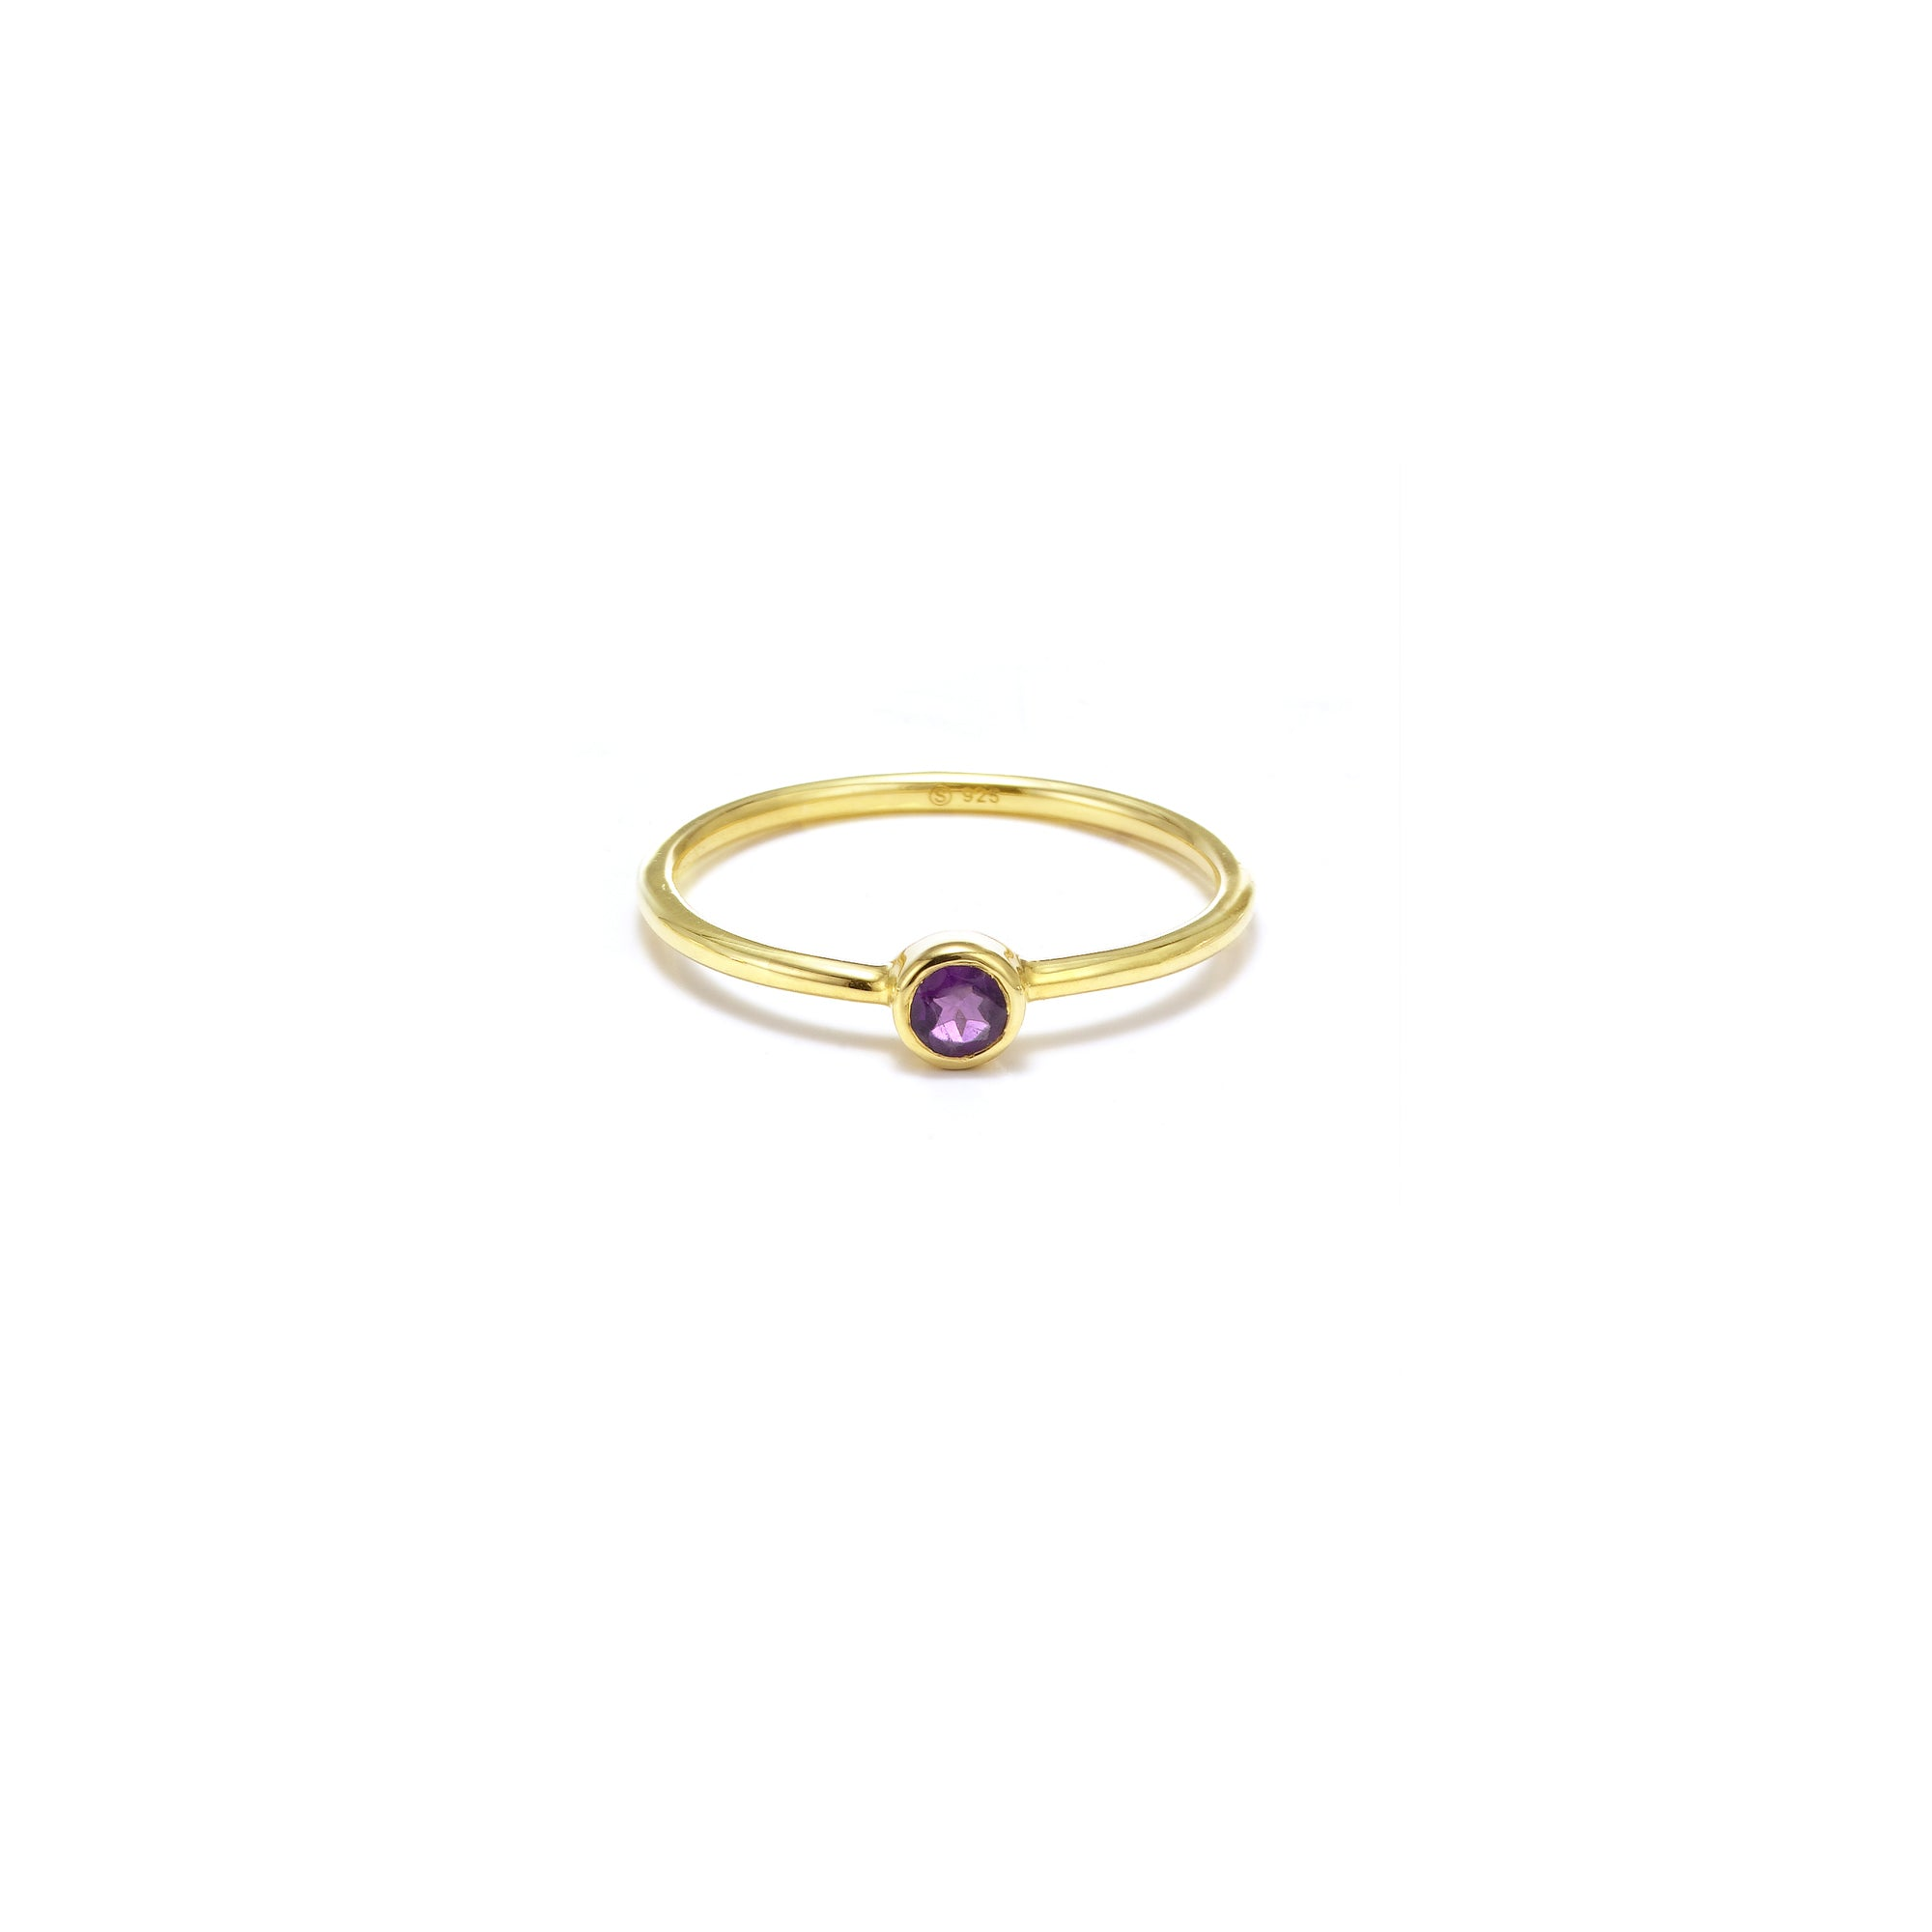 AXIS / Ring / Pistil / Gold + Amethyst